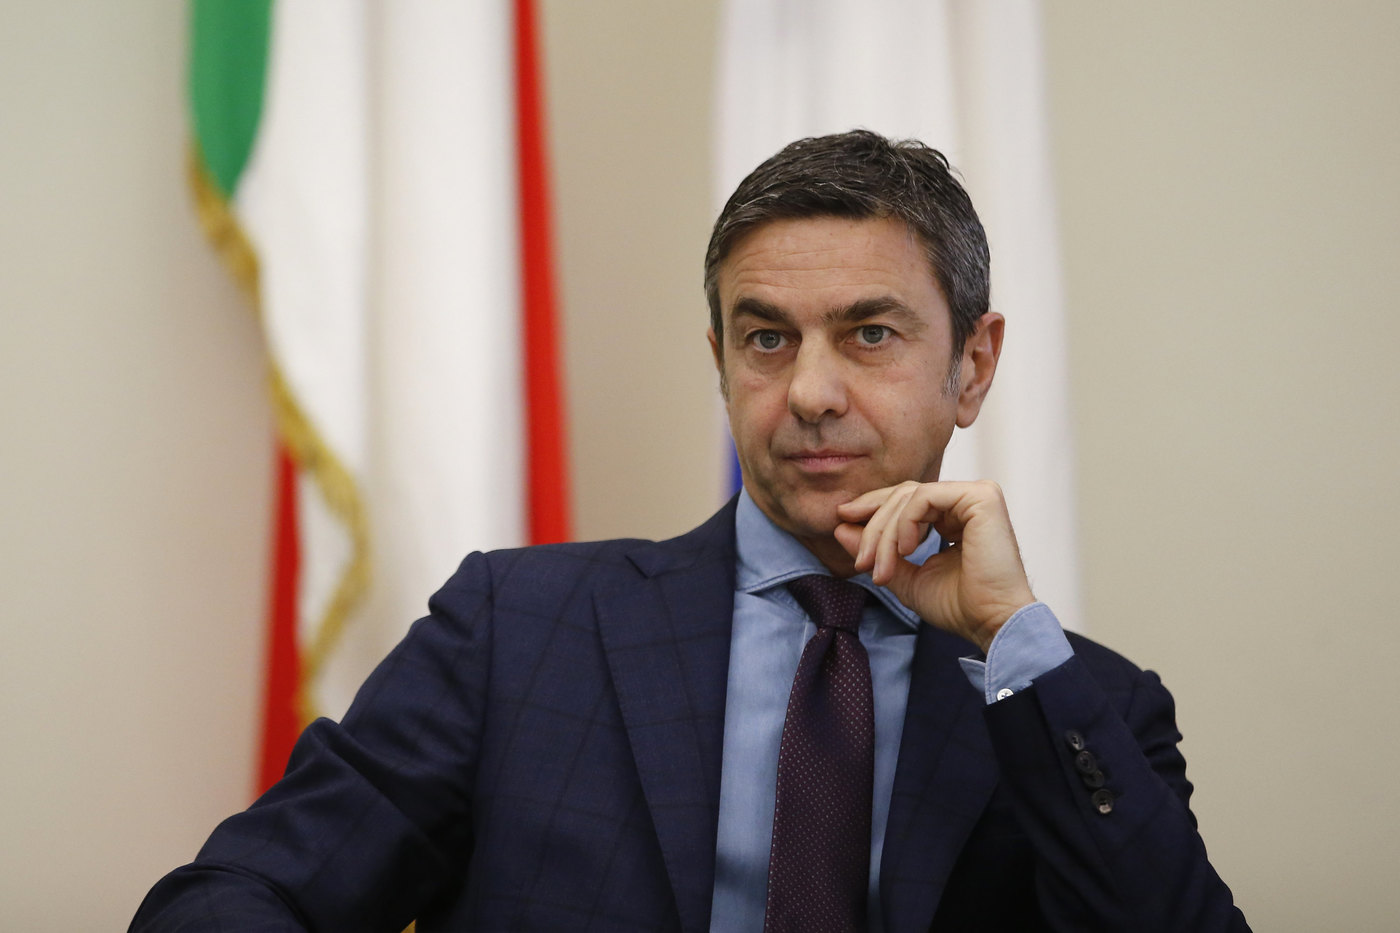 Ct Italia, Costacurta: